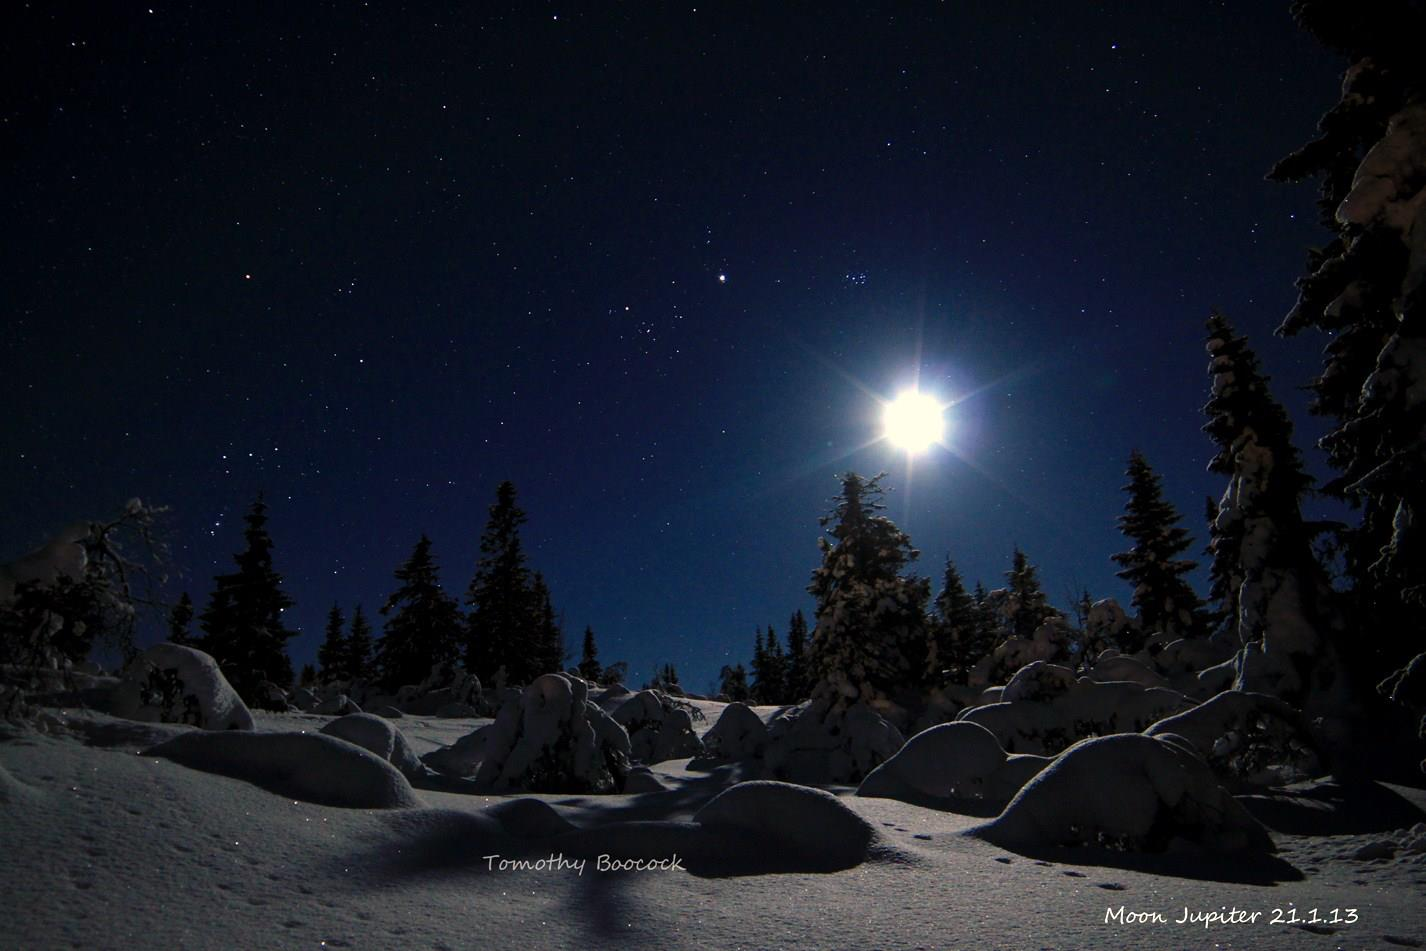 Jupiter on the night of January 20-21, 2013 from Trysil, Norway. Thank